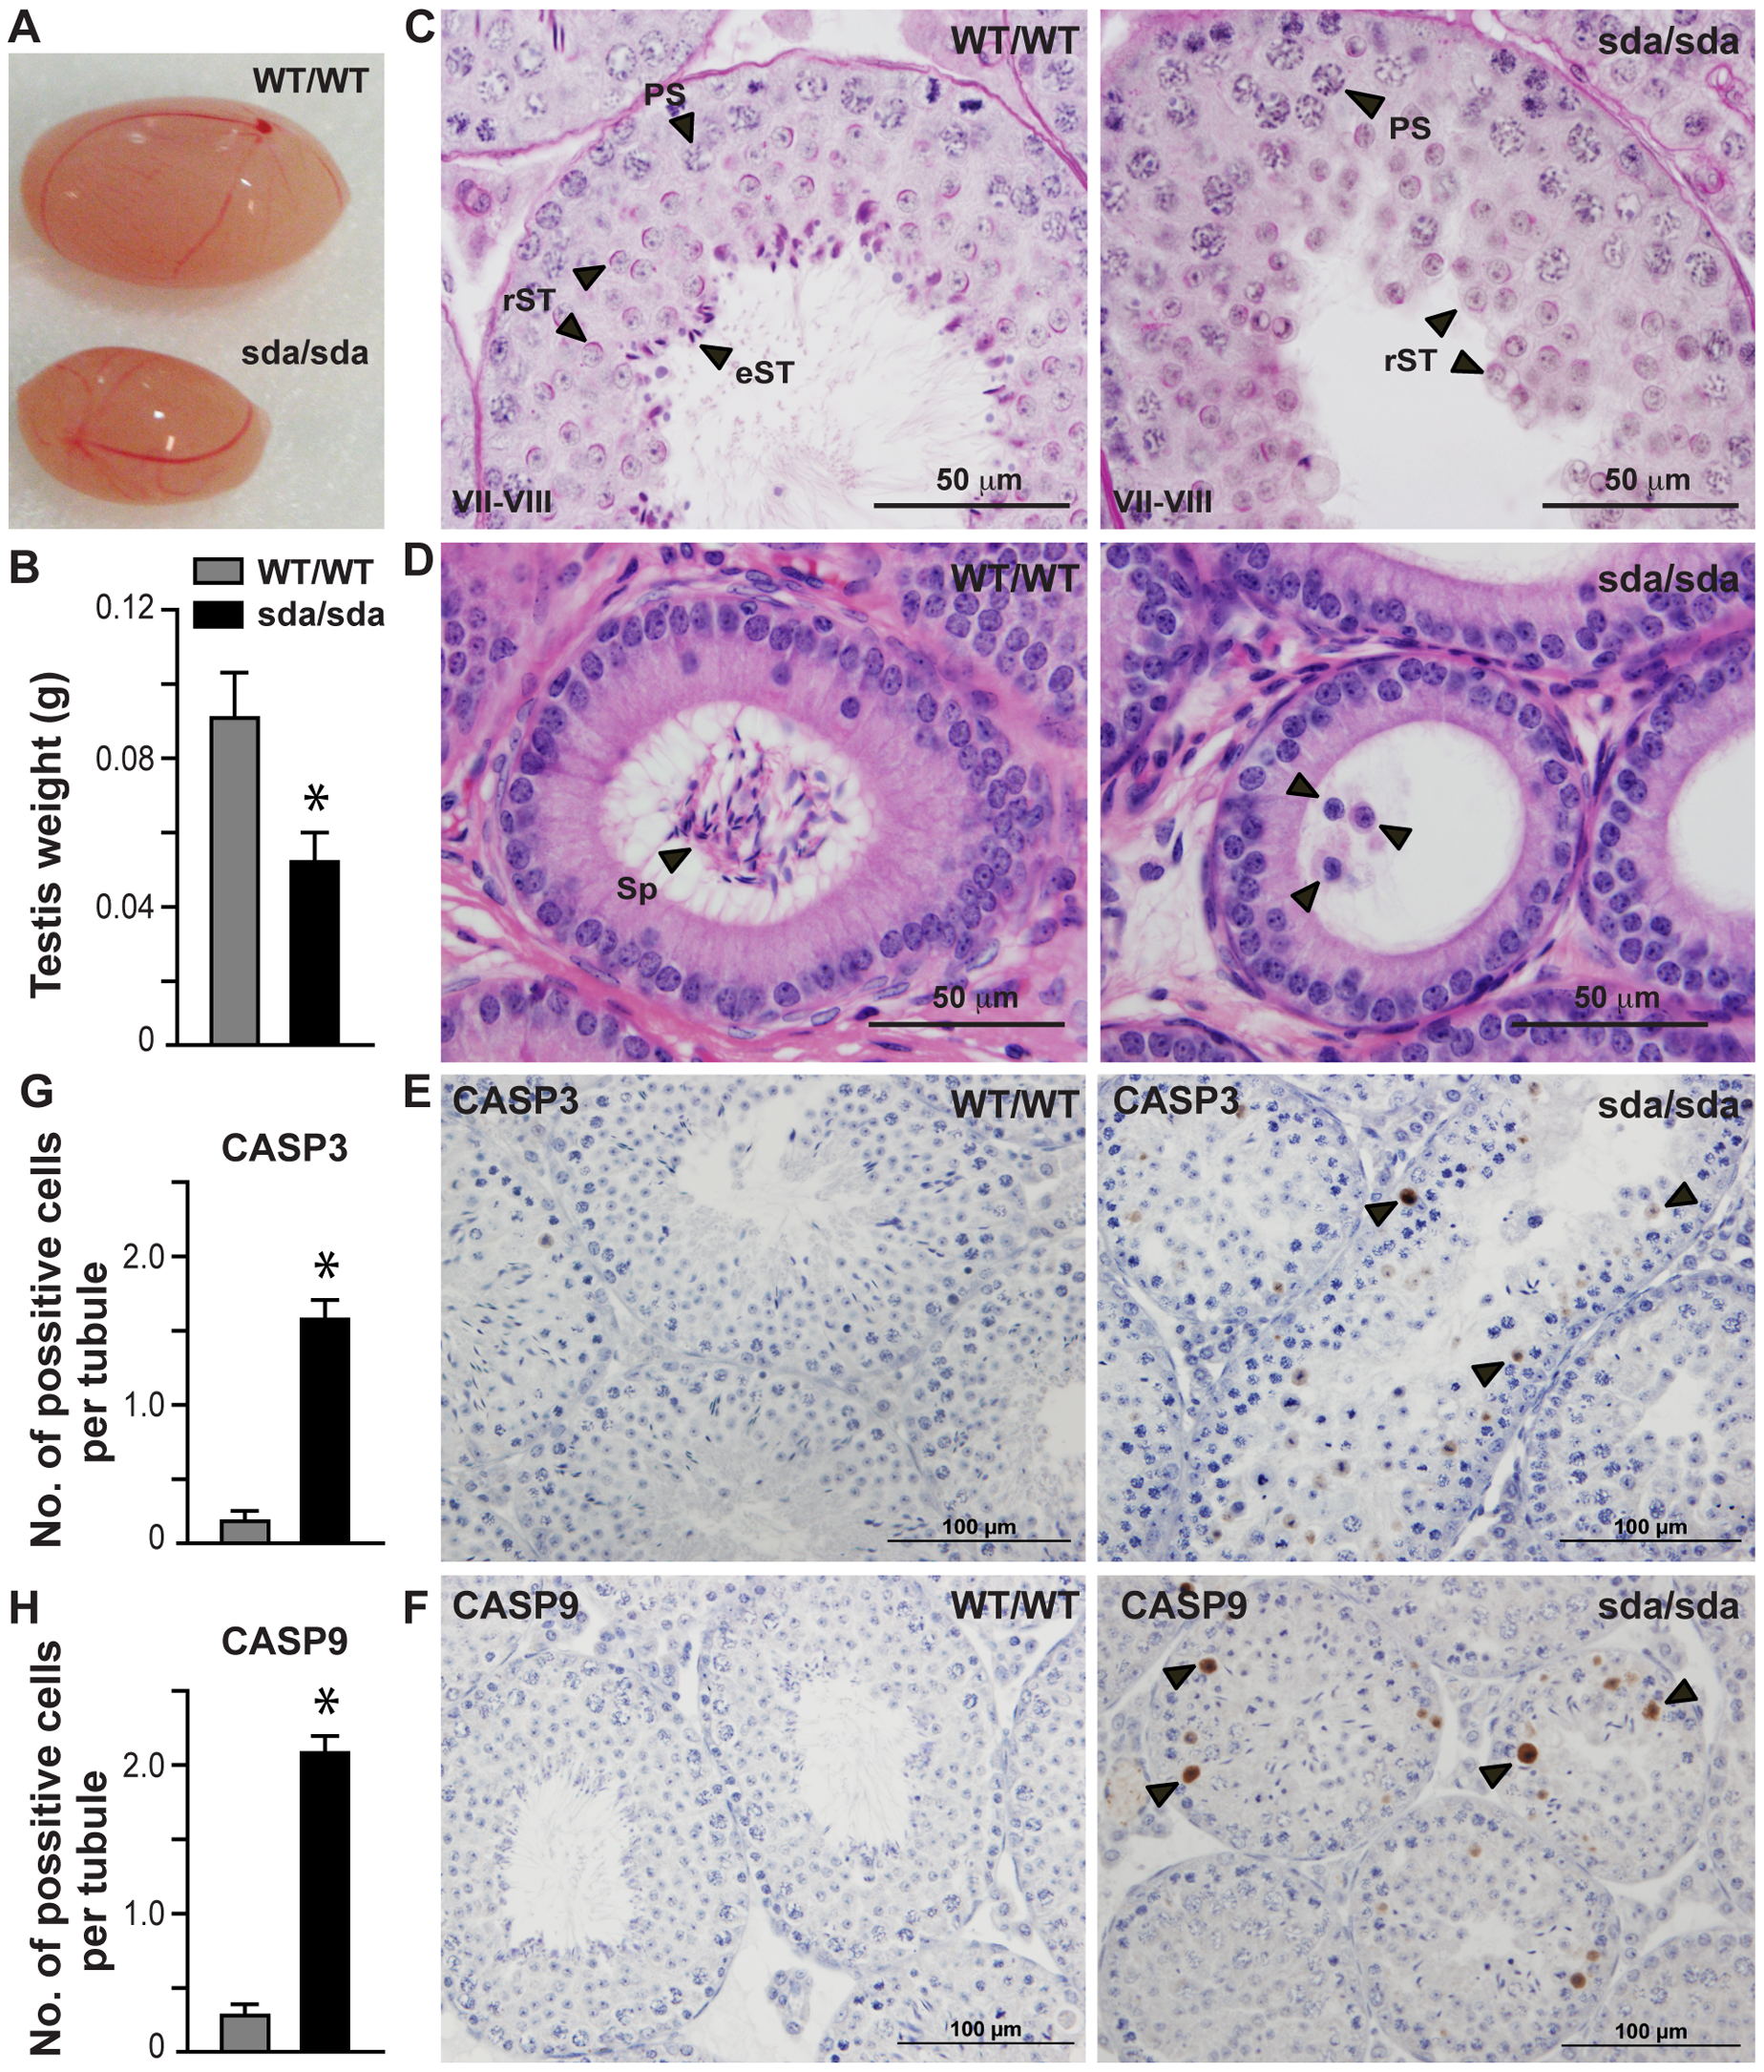 Spermatid differentiation arrest, germ cell sloughing and apoptosis lead to sterility in the <i>Rbm5<sup>sda/sda</sup></i> males.